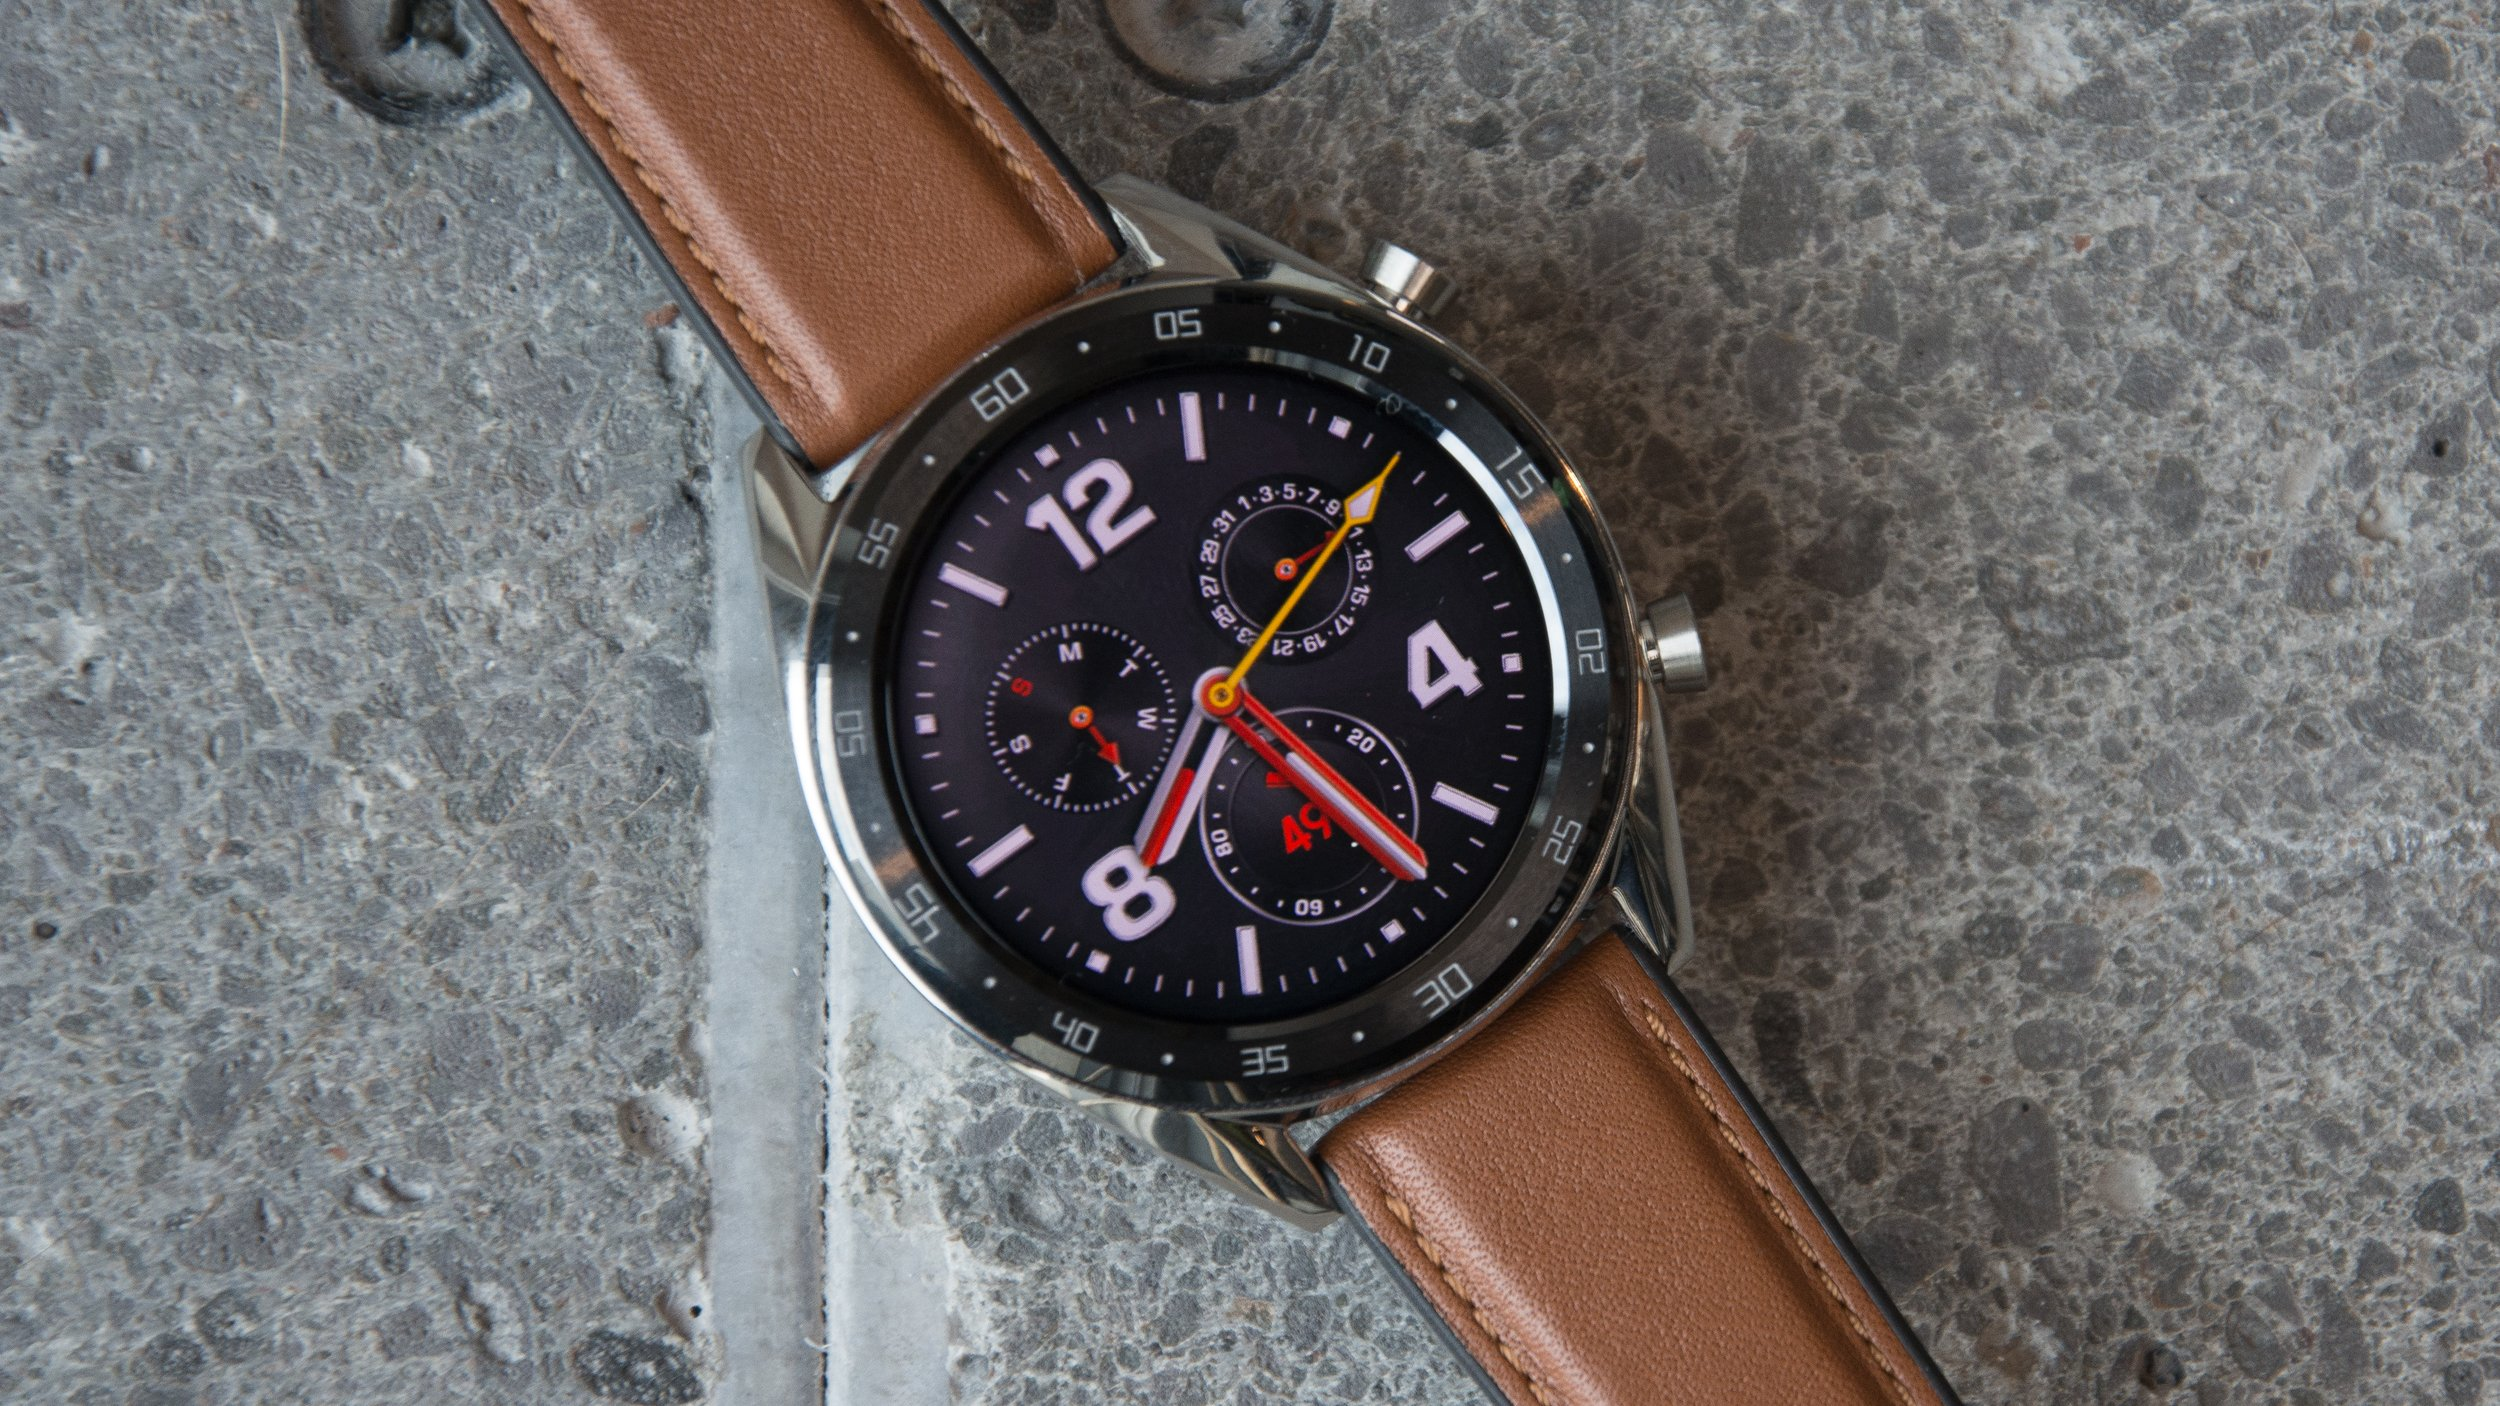 Huawei Watch GT review: Could twin chipsets fix wearables